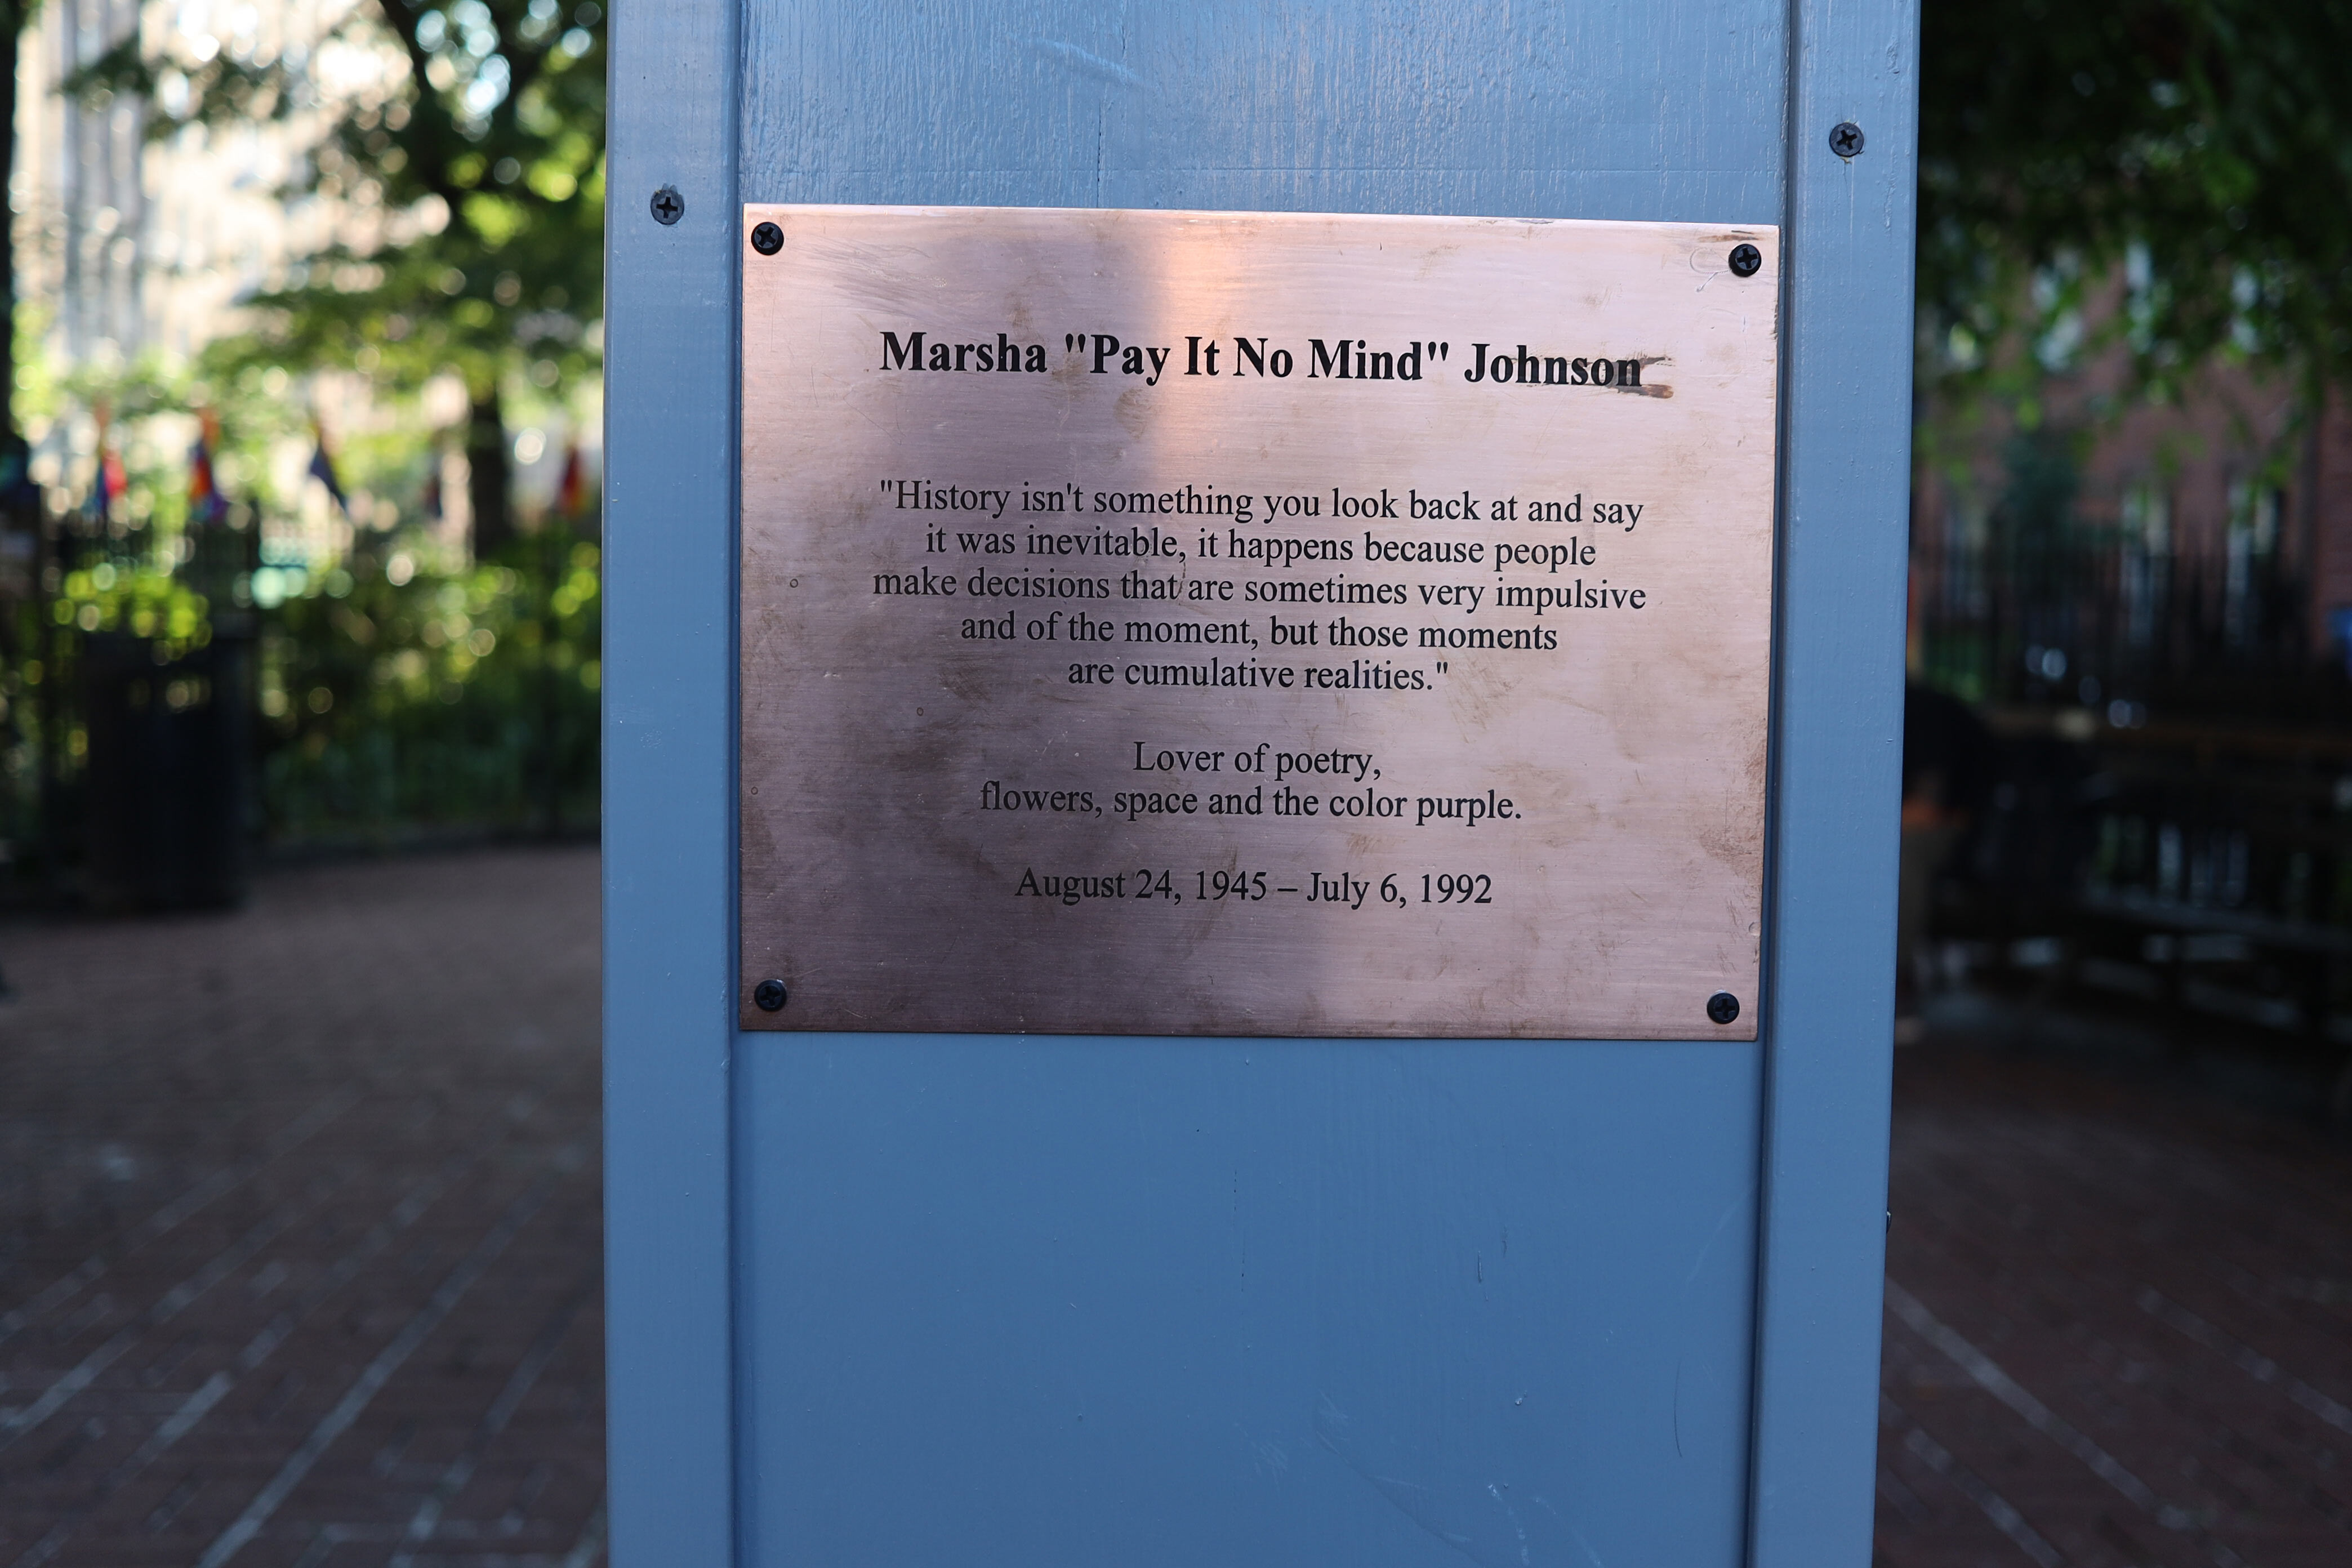 A bust of Marsha P. Johnson went up near the Stonewall Inn as a tribute to the transgender activist